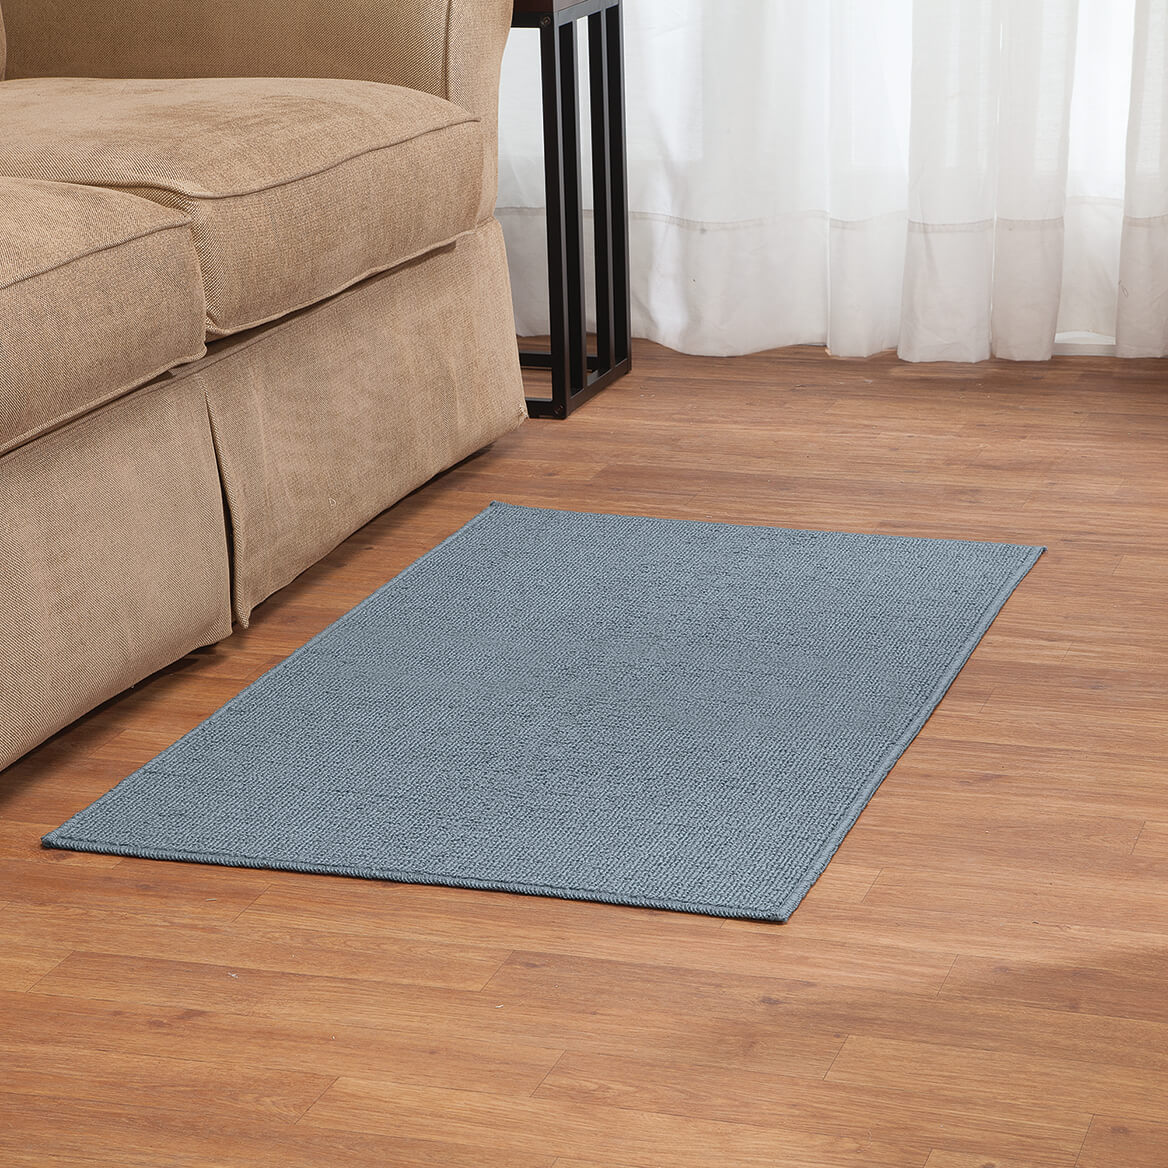 Rugby Solid Colored Rug by Oakridge®, Blue Set of 3-369098